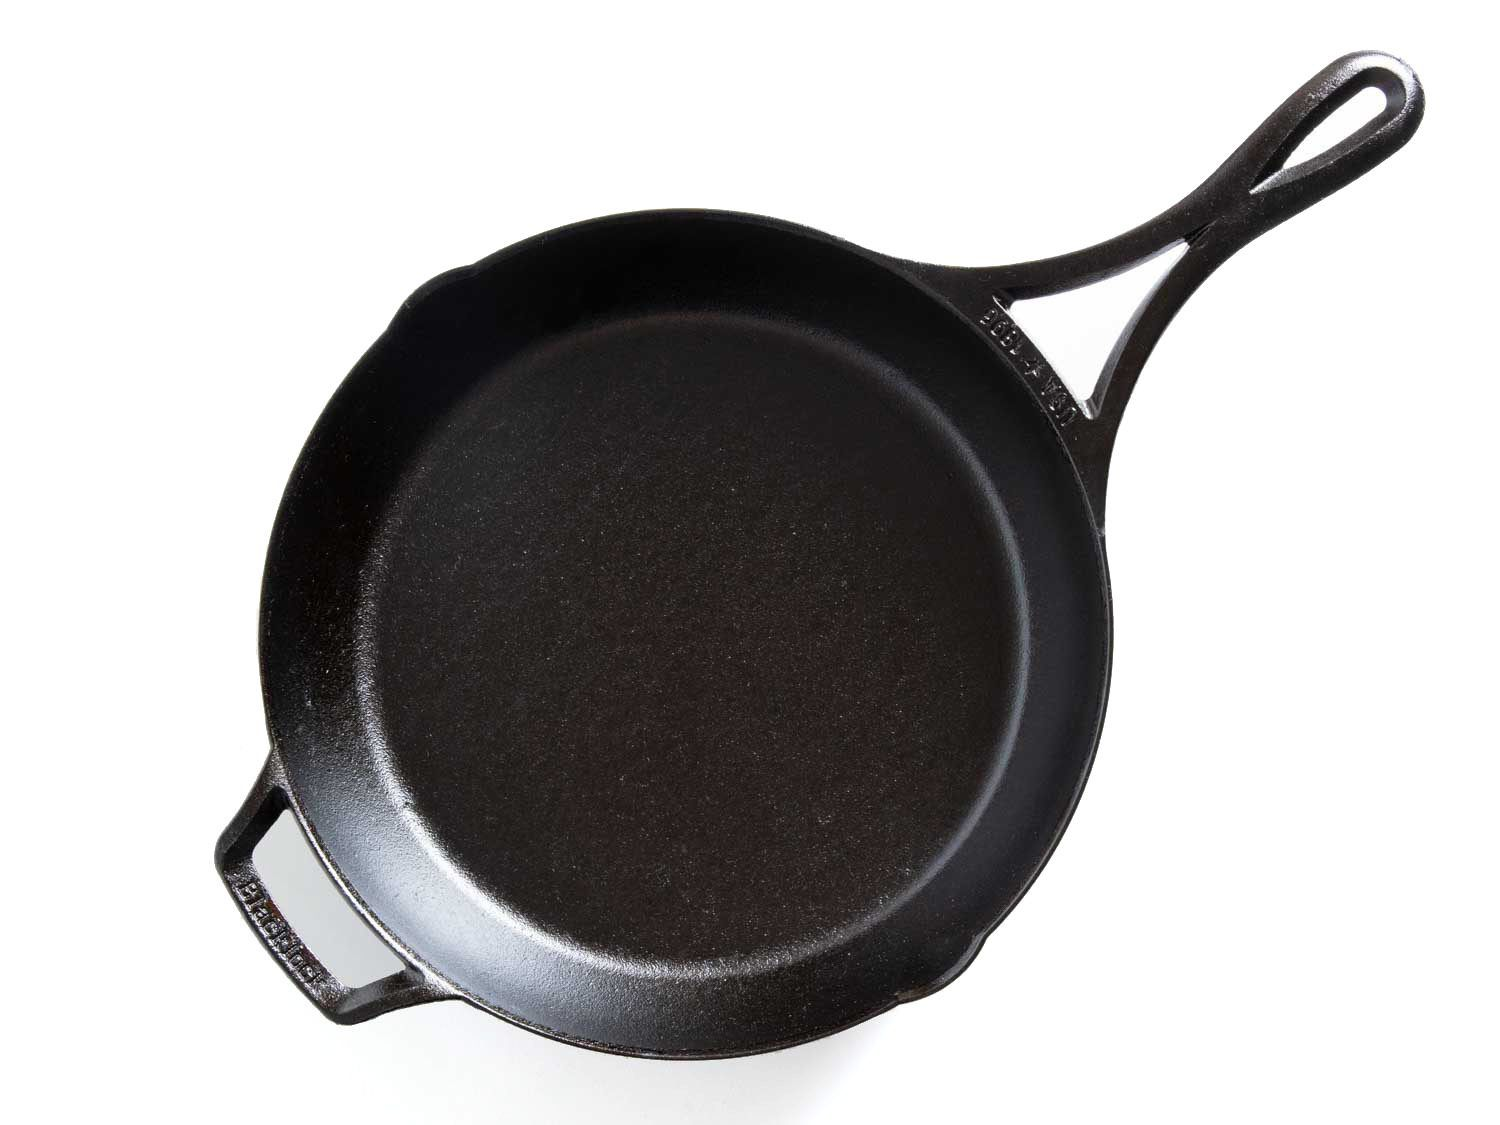 The Lodge Blacklock skillet on a white background.